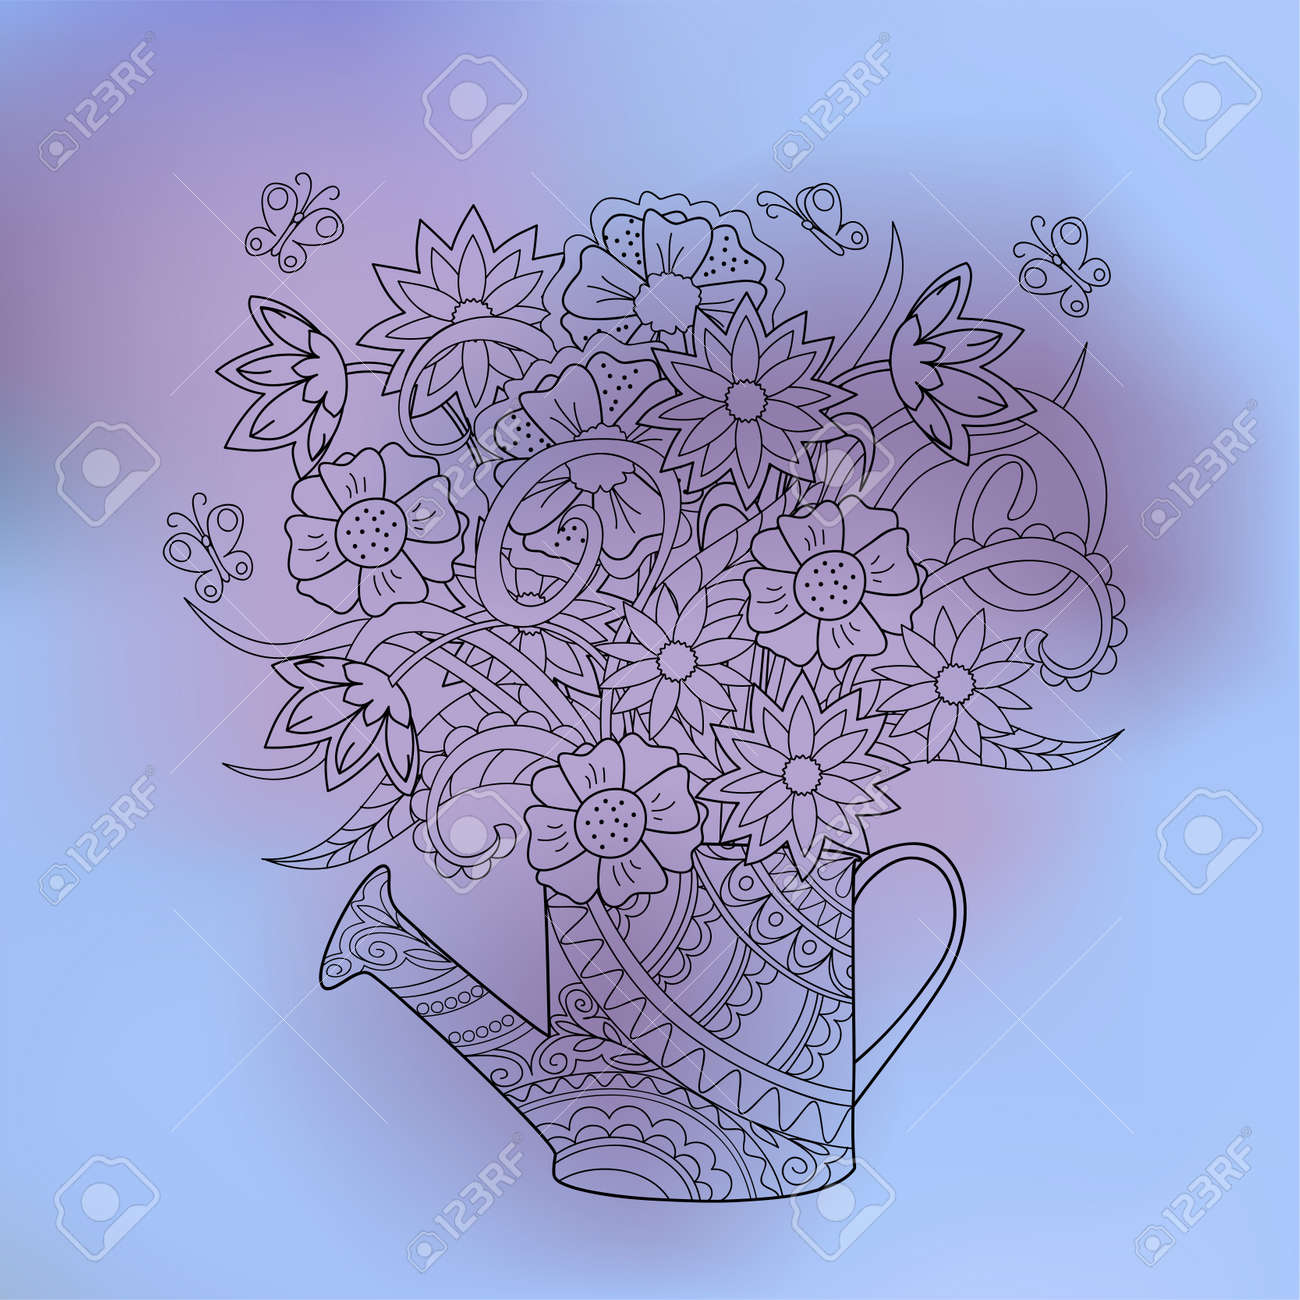 Hand Drawn Transparent Doodle Flowers Bouquet With Butterflies For Fabric Print Wall Art And Decoration